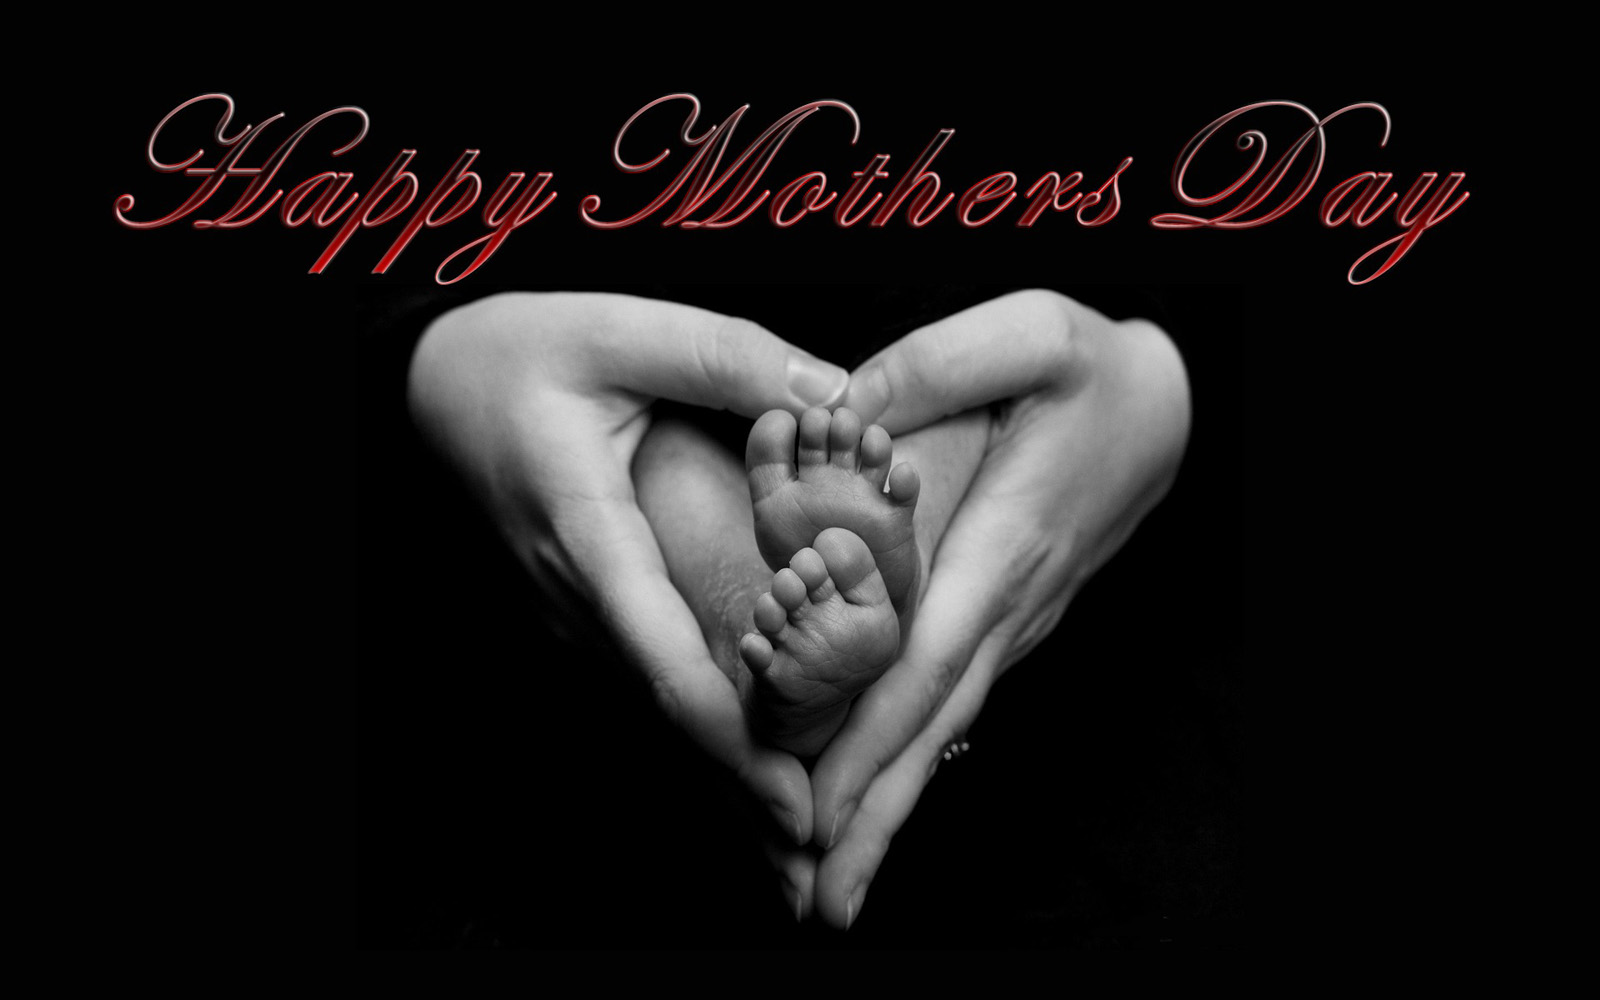 cards-of-Happy-Mothers-Day